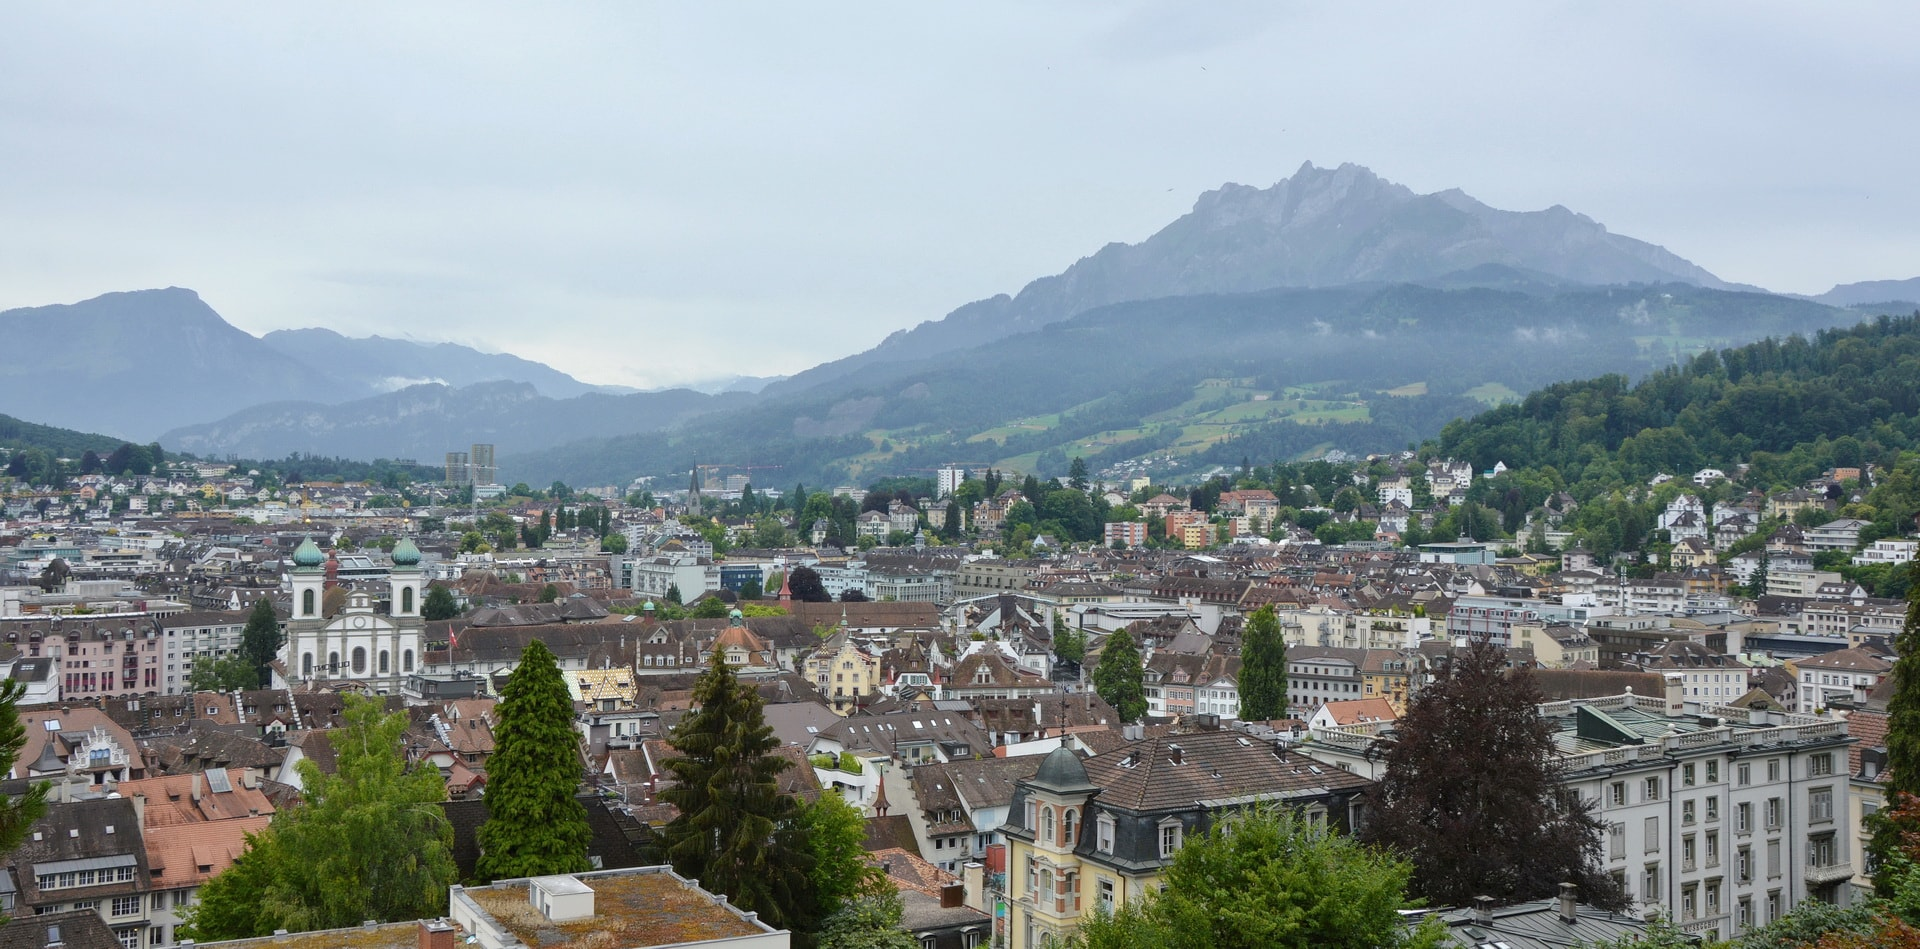 Mount Pilatus rising over the city of Lucerne